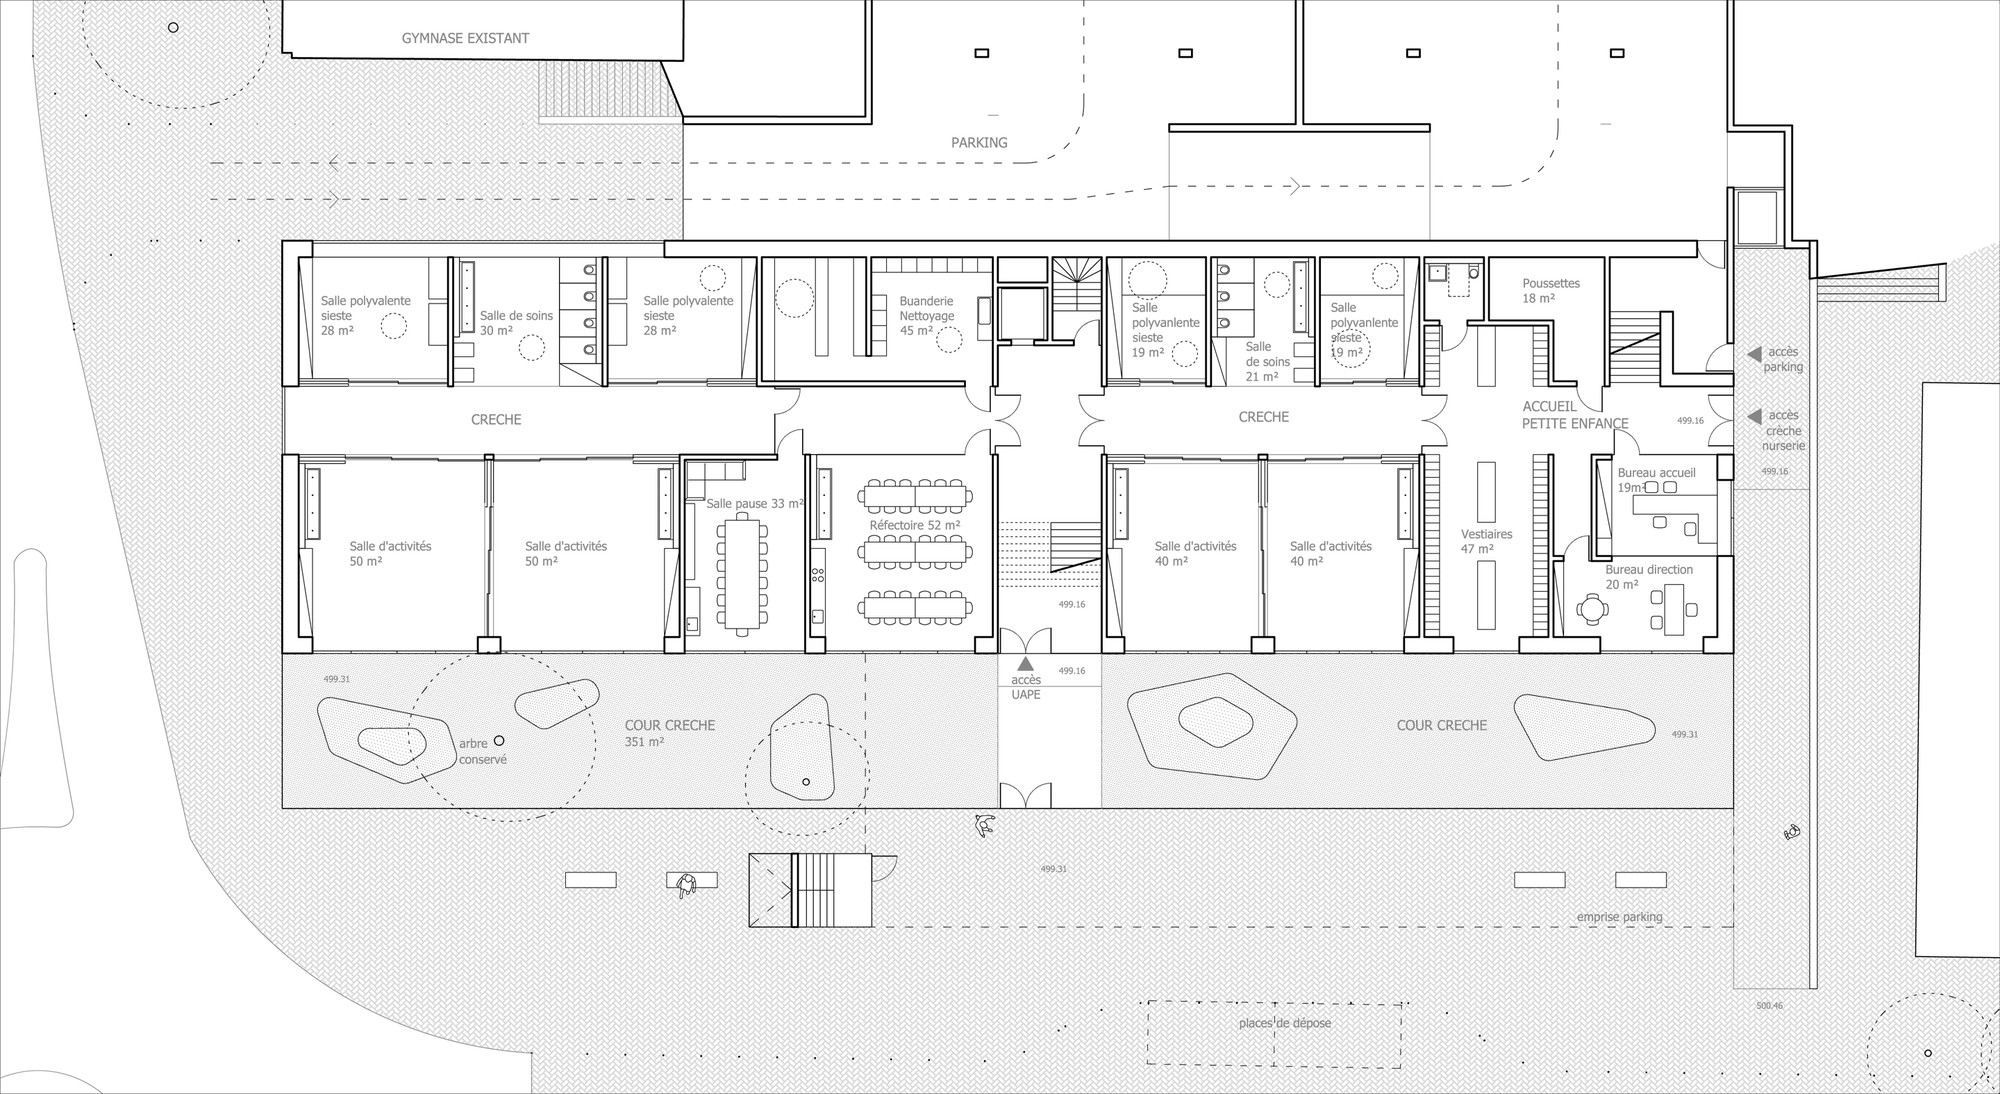 superpose school extension competition entry overcode 17 best images about extension ideas on pinterest